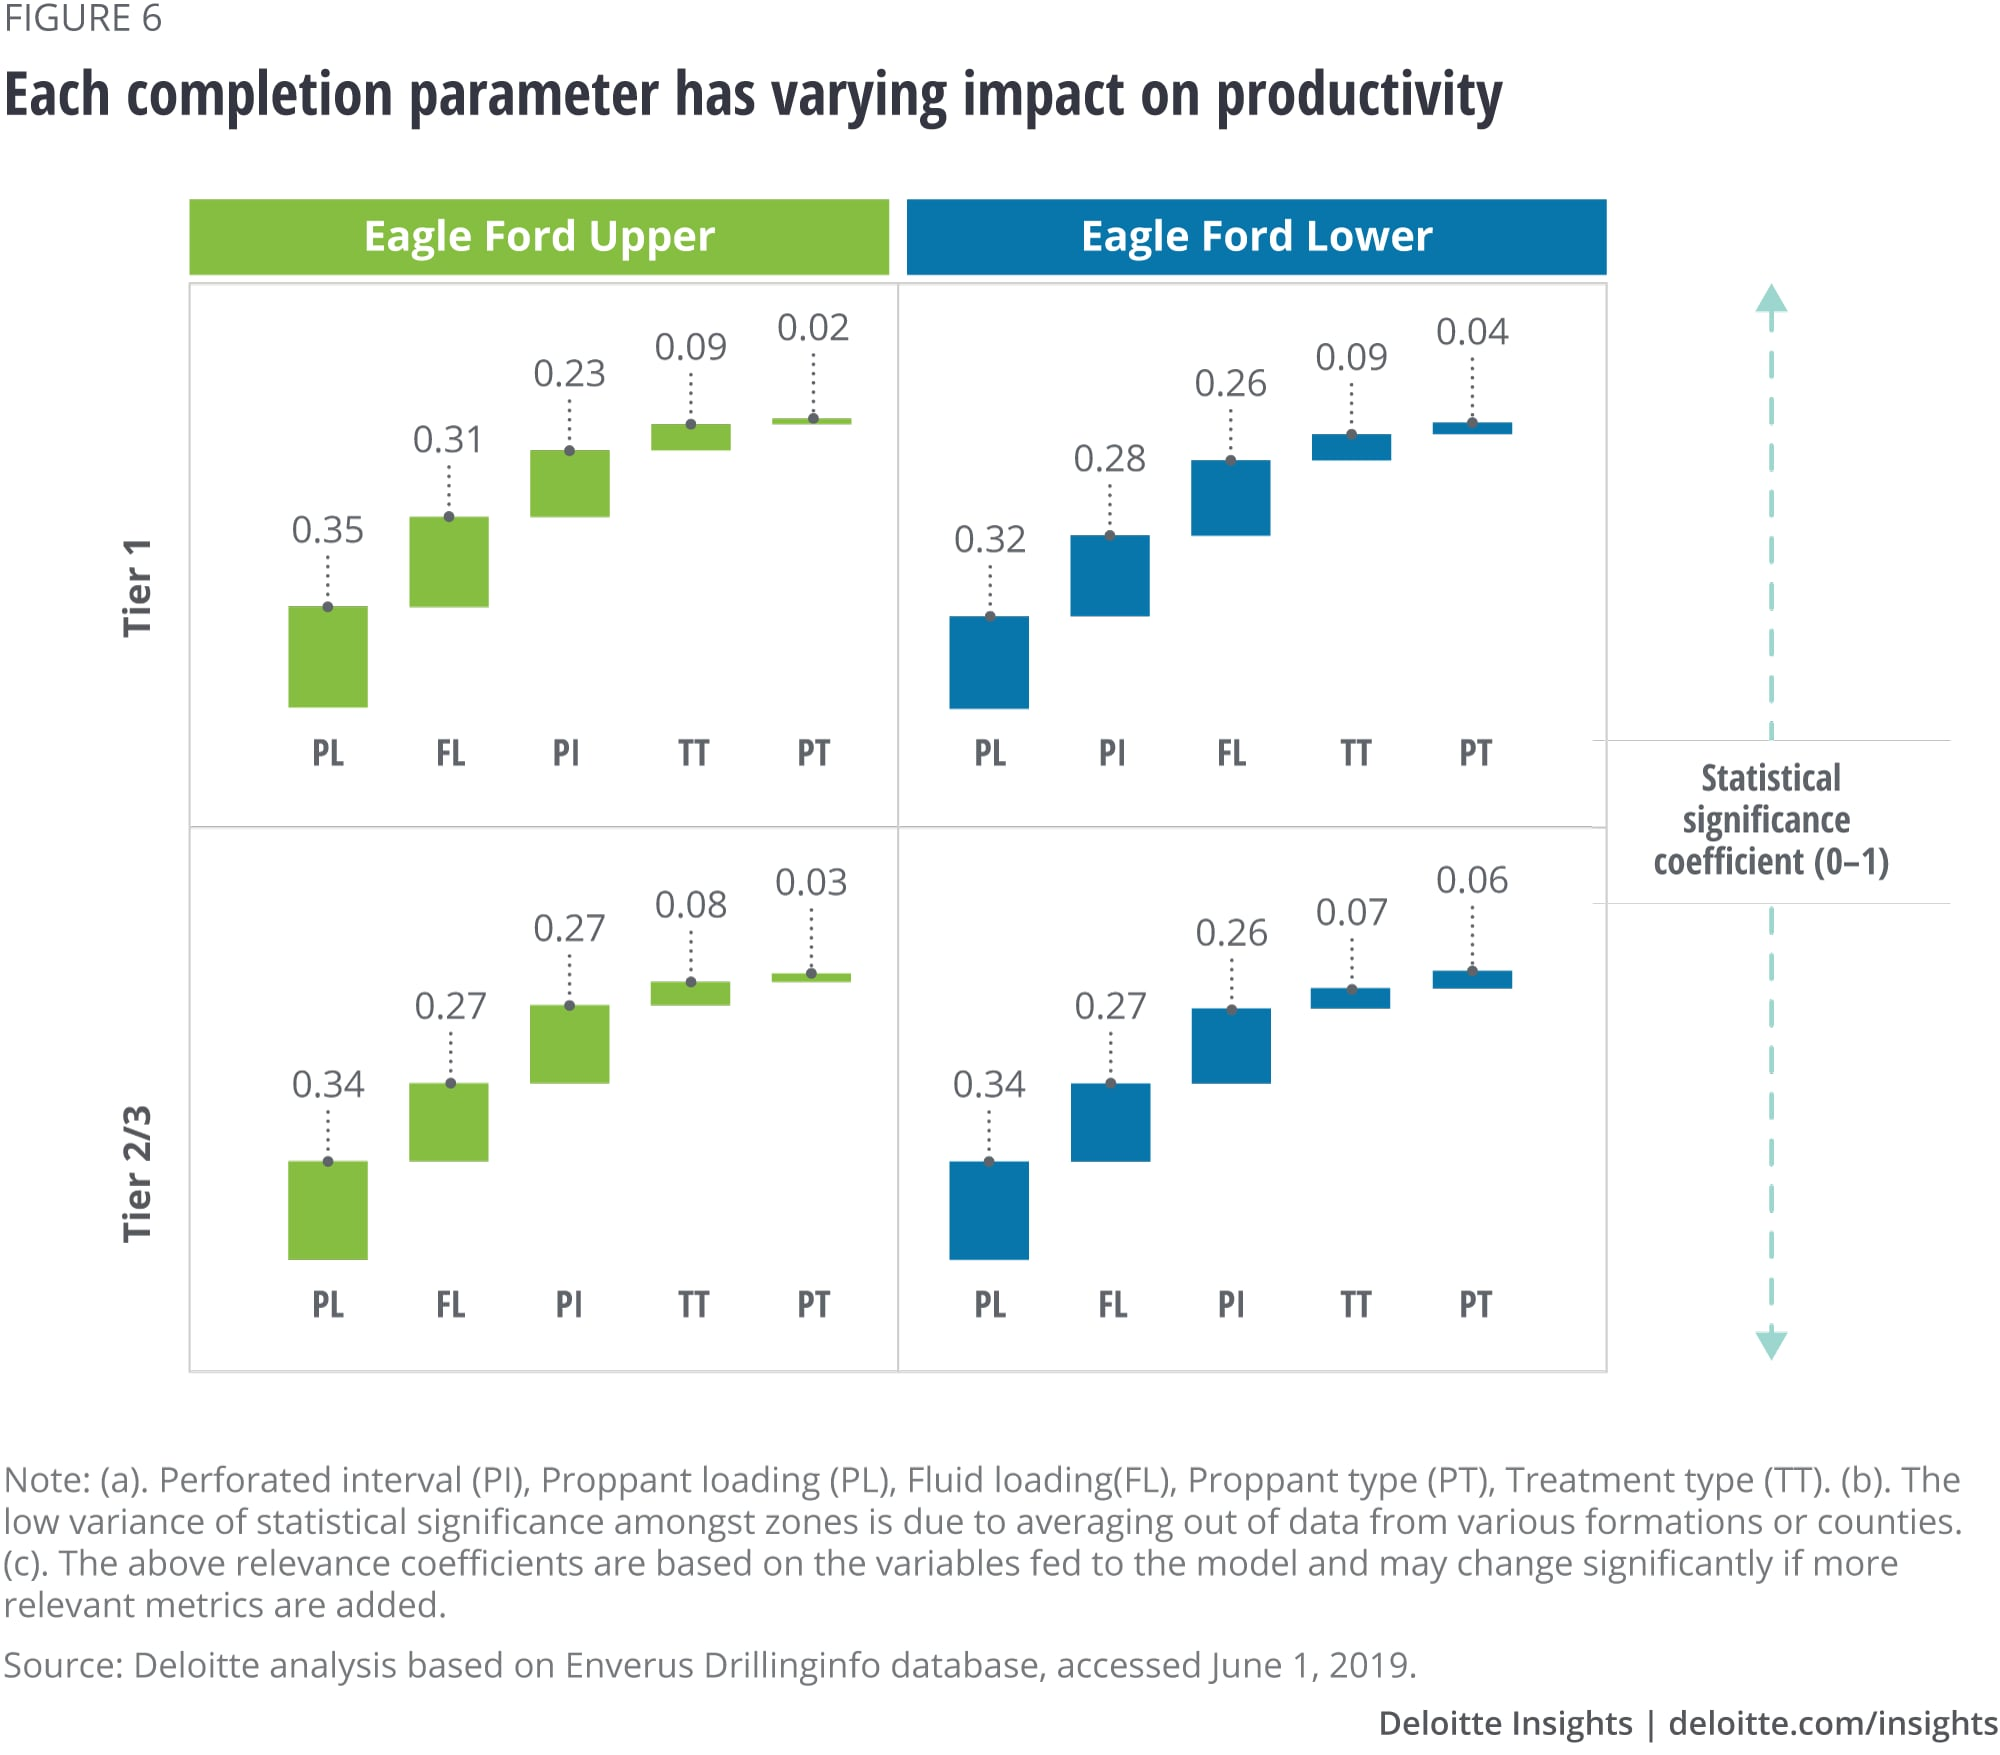 Each completion parameter has varying impact on productivity